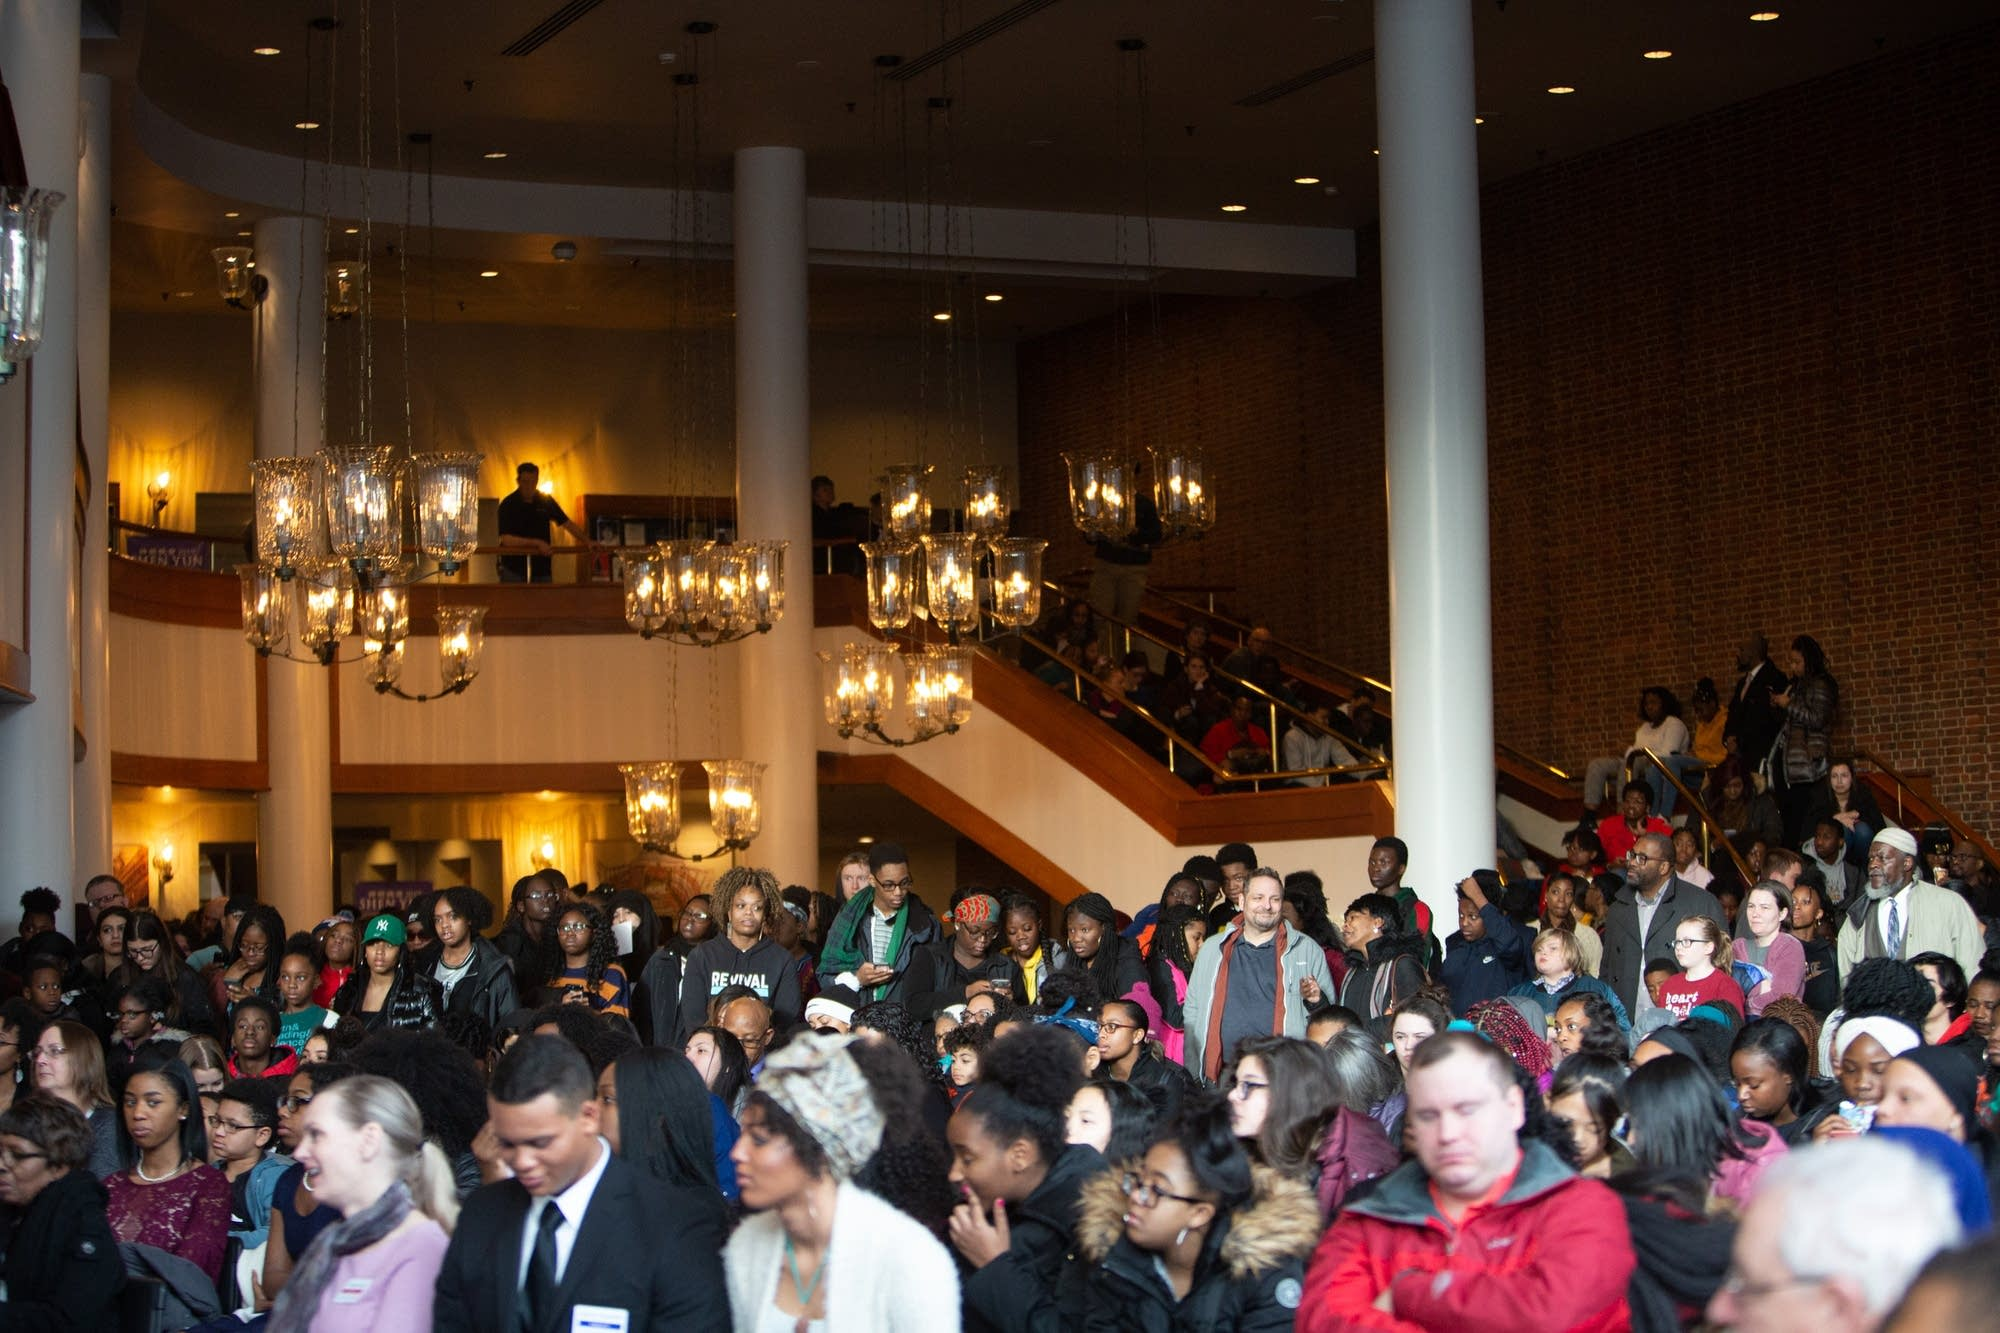 More than a hundred people attended the MLK Day Celebration youth rally.